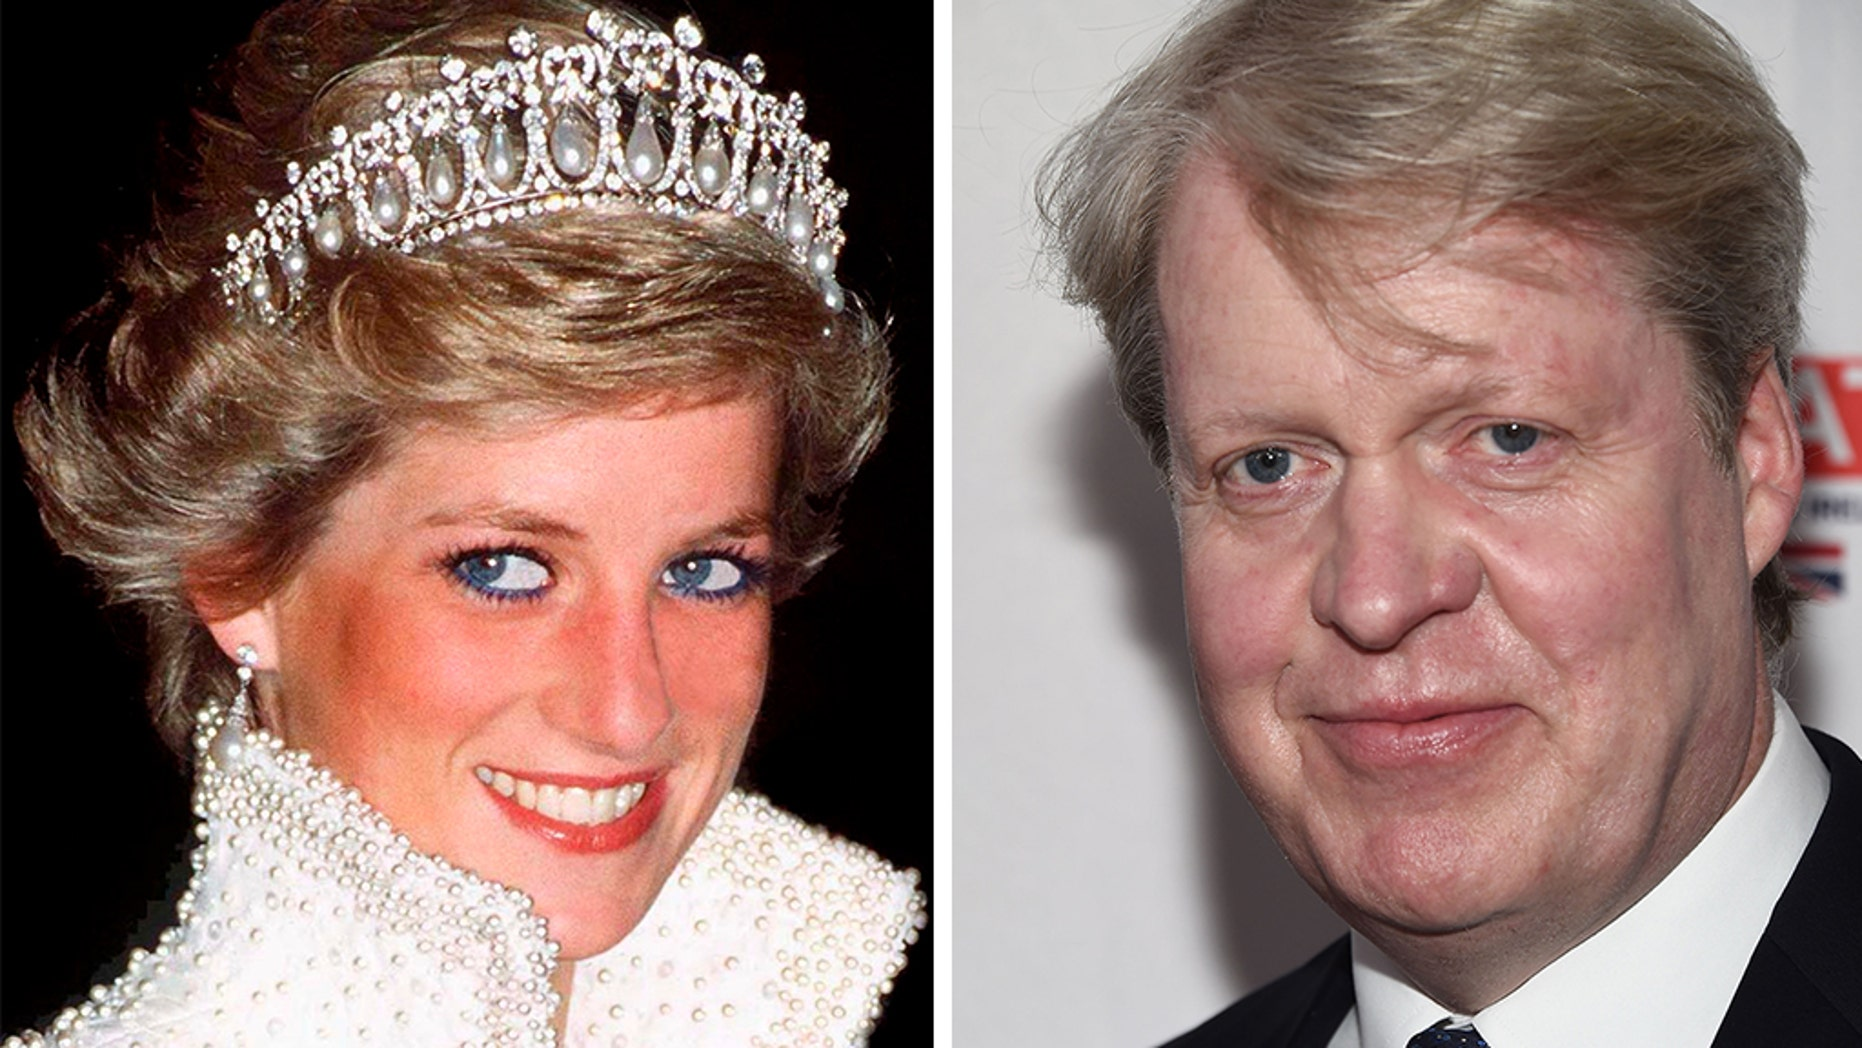 Princess Diana's brother, Charles Spencer, says she would have been the 'best grandmother ever' in a new interview with People Magazine published on Thursday.